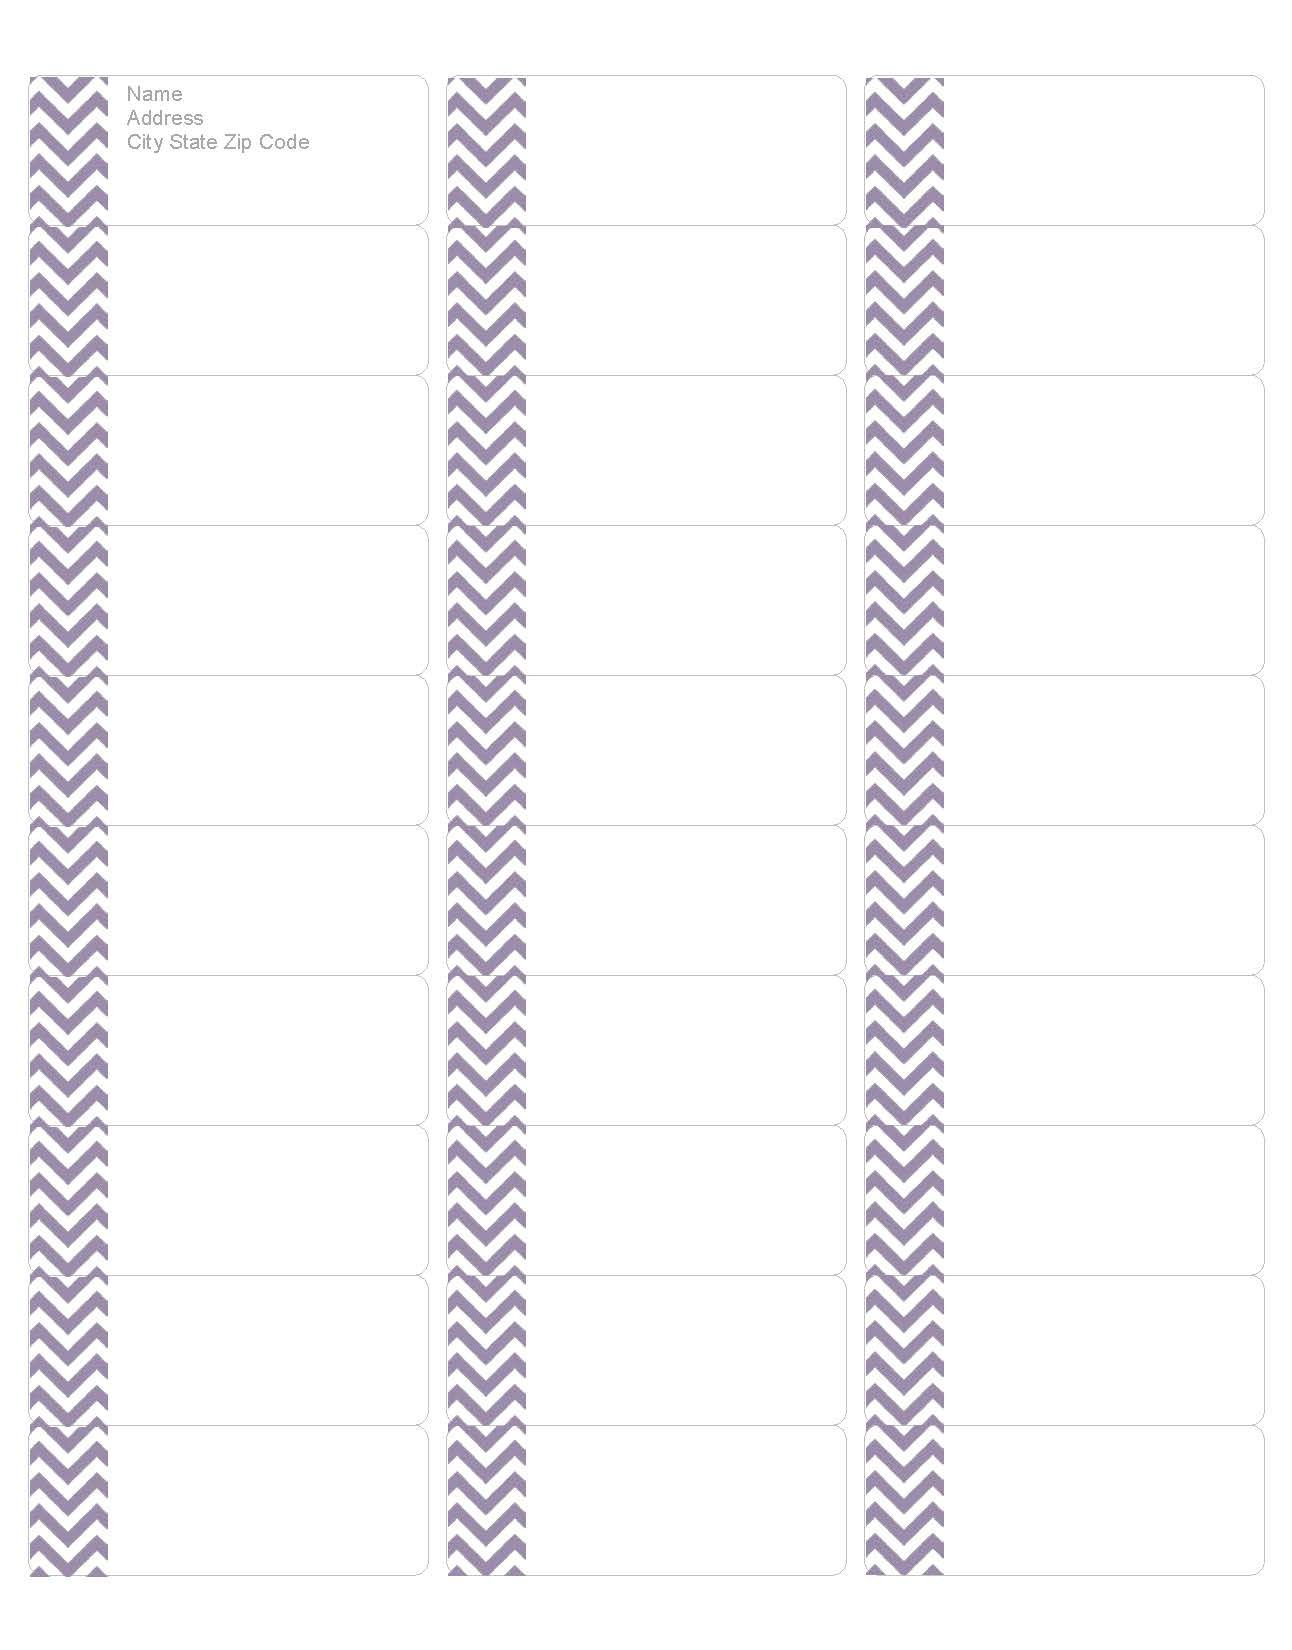 download your free purple chevron address labels  compatible with avery return address label